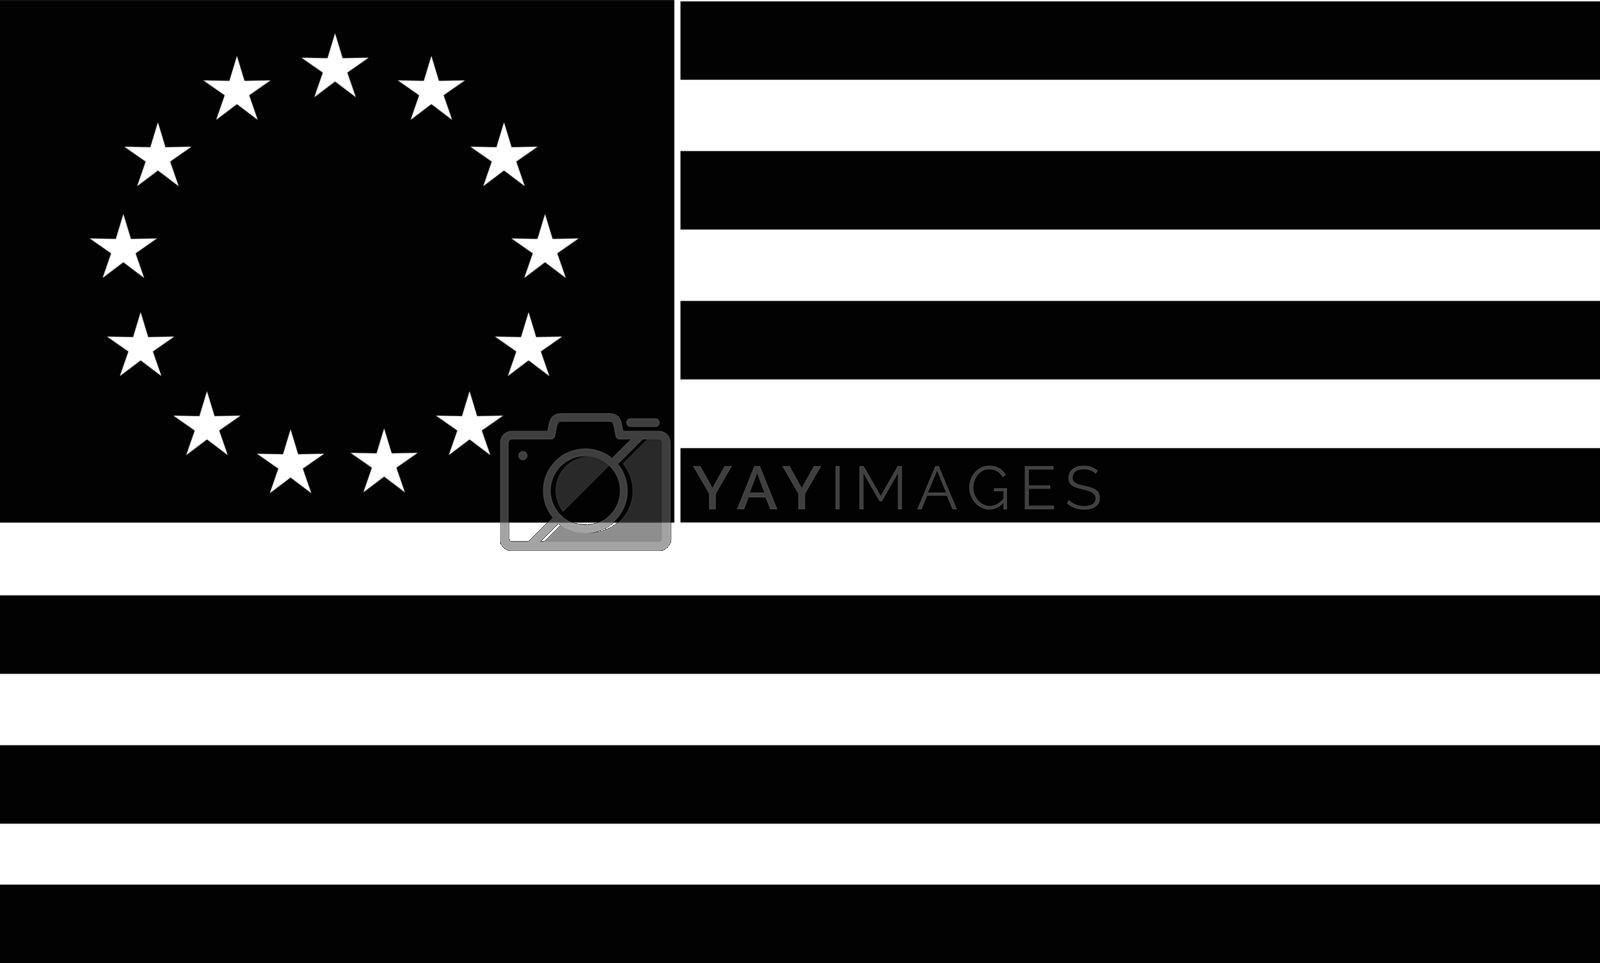 Black and white illustration of a the Betsy Ross flag, an early design of United States flag with 13 alternating red-and-white stripes with stars in upper left corner canton on isolated background.